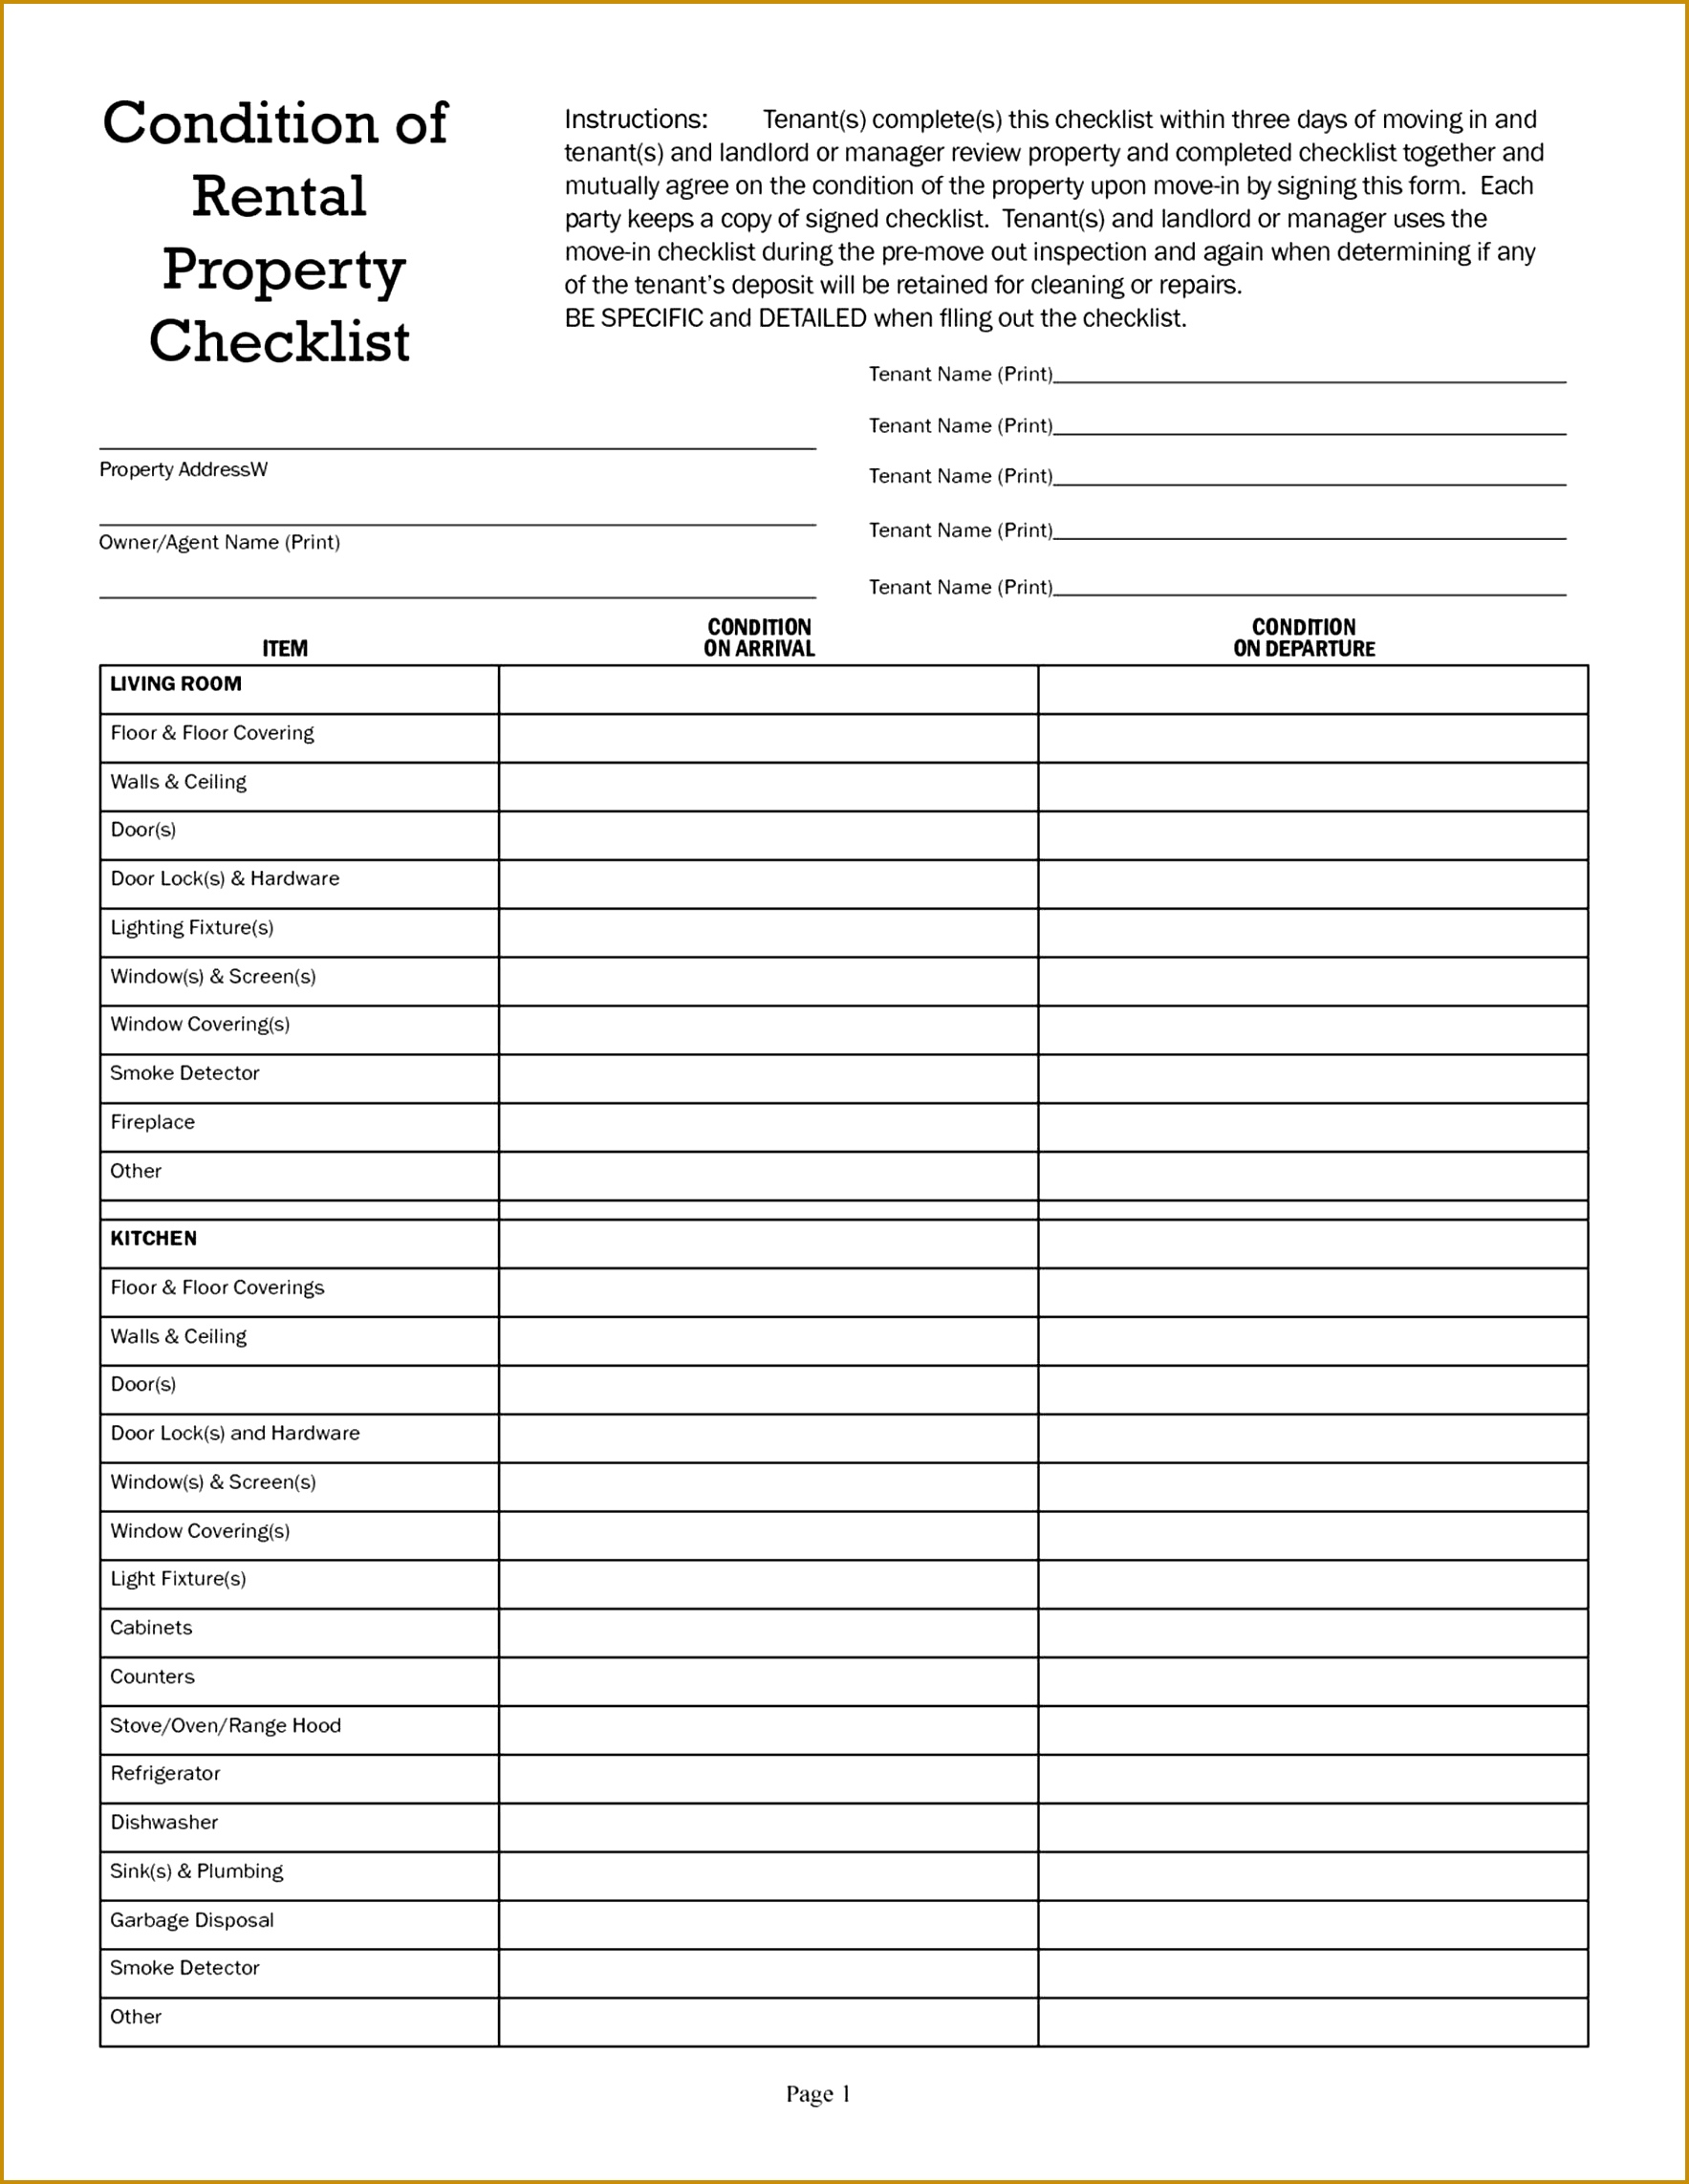 punch list form 41247 template remodeling checklist template punch